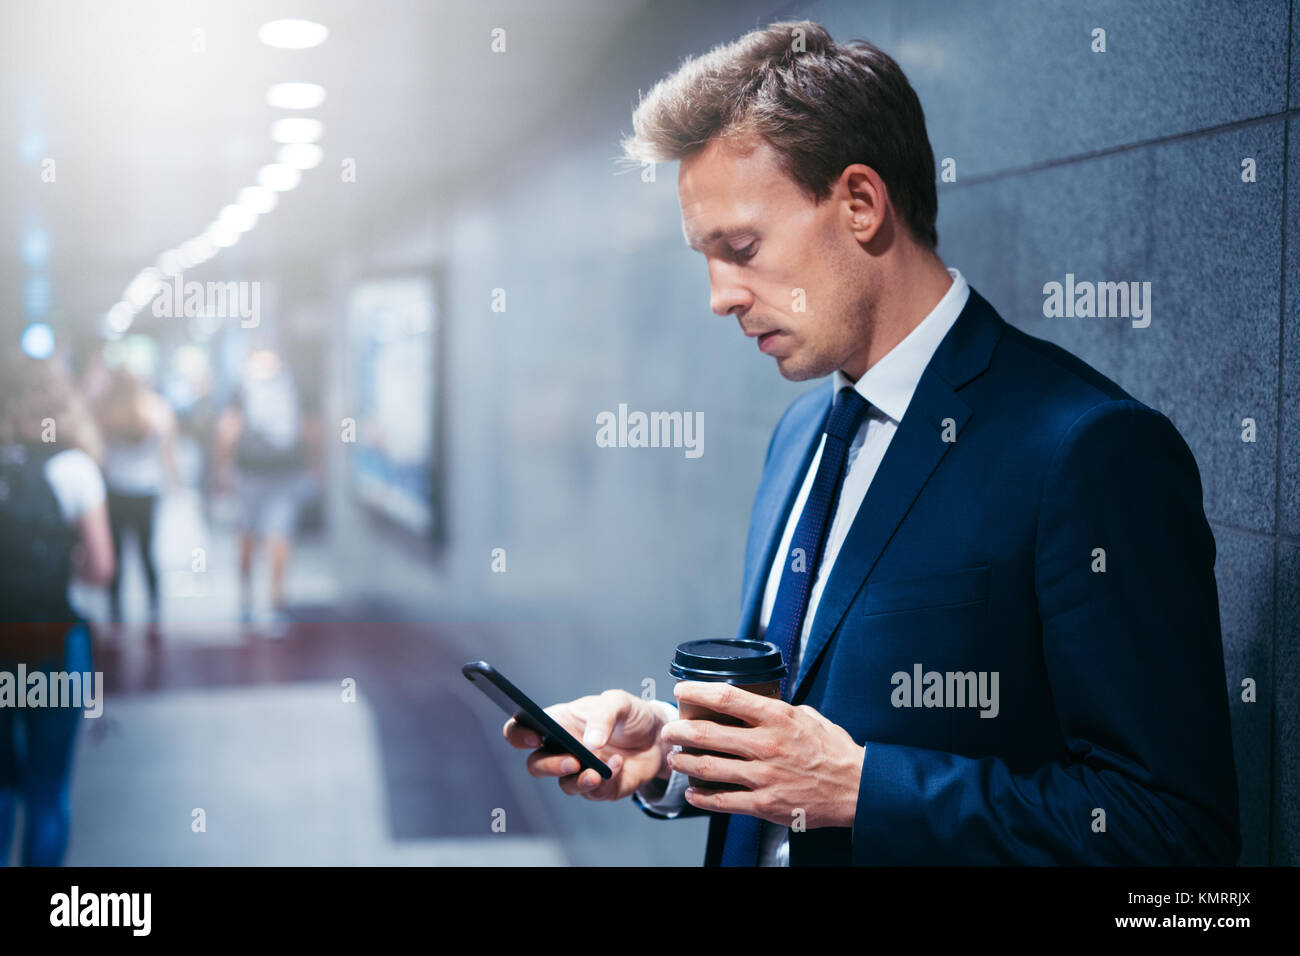 Young businessman drinking coffee and reading text messages on his cellphone while standing on a subway platform - Stock Image